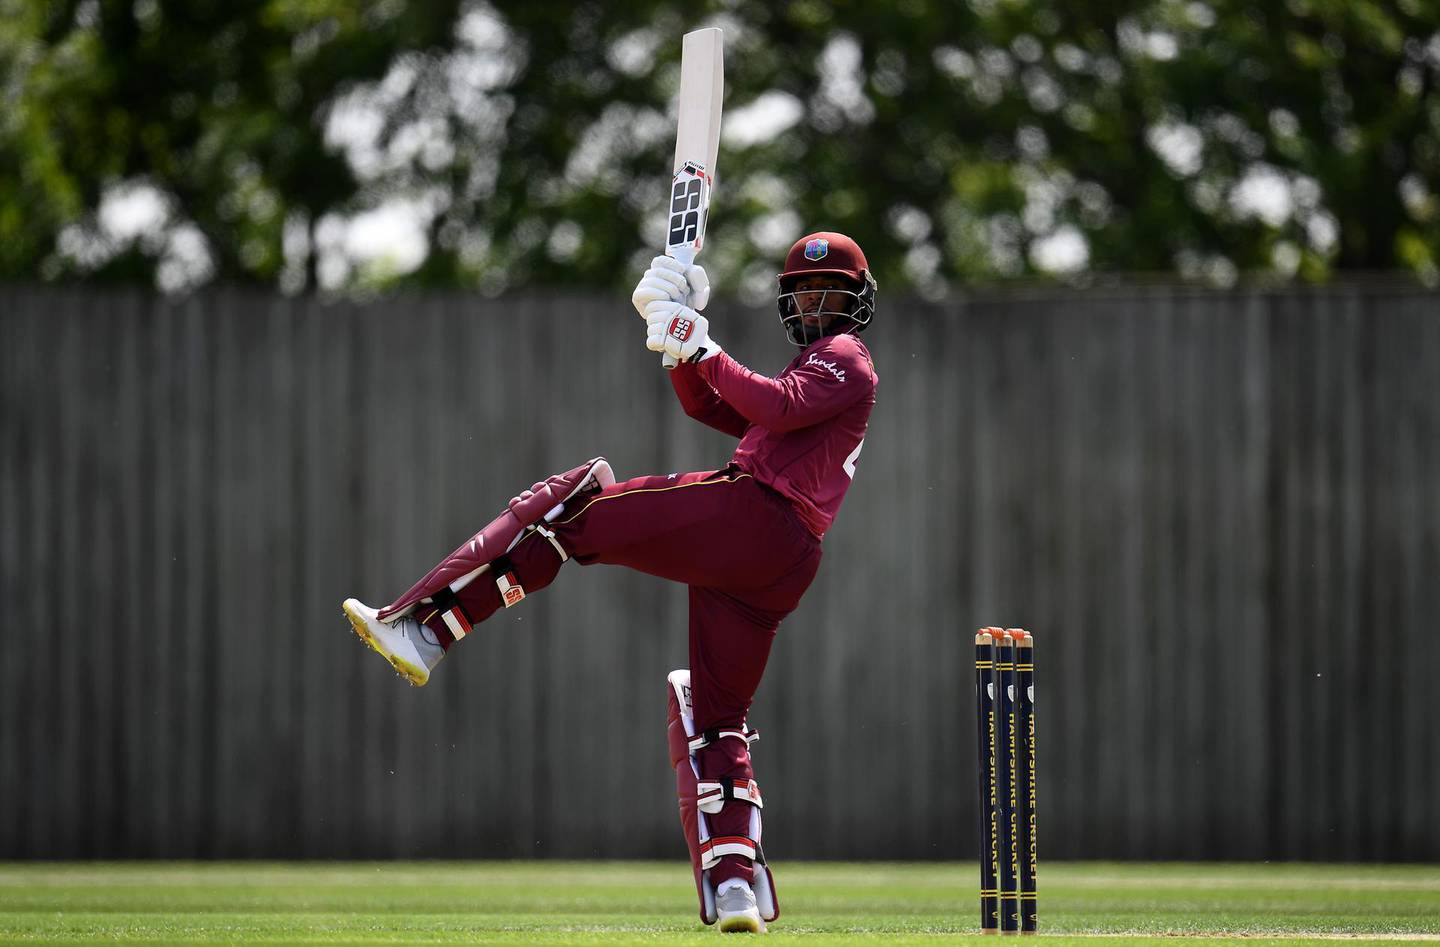 SOUTHAMPTON, ENGLAND - MAY 22: Shai Hope of West Indies bats during the One Day International match between Australia and West Indies at the Ageas Bowl on May 22, 2019 in Southampton, England. (Photo by Harry Trump/Getty Images)